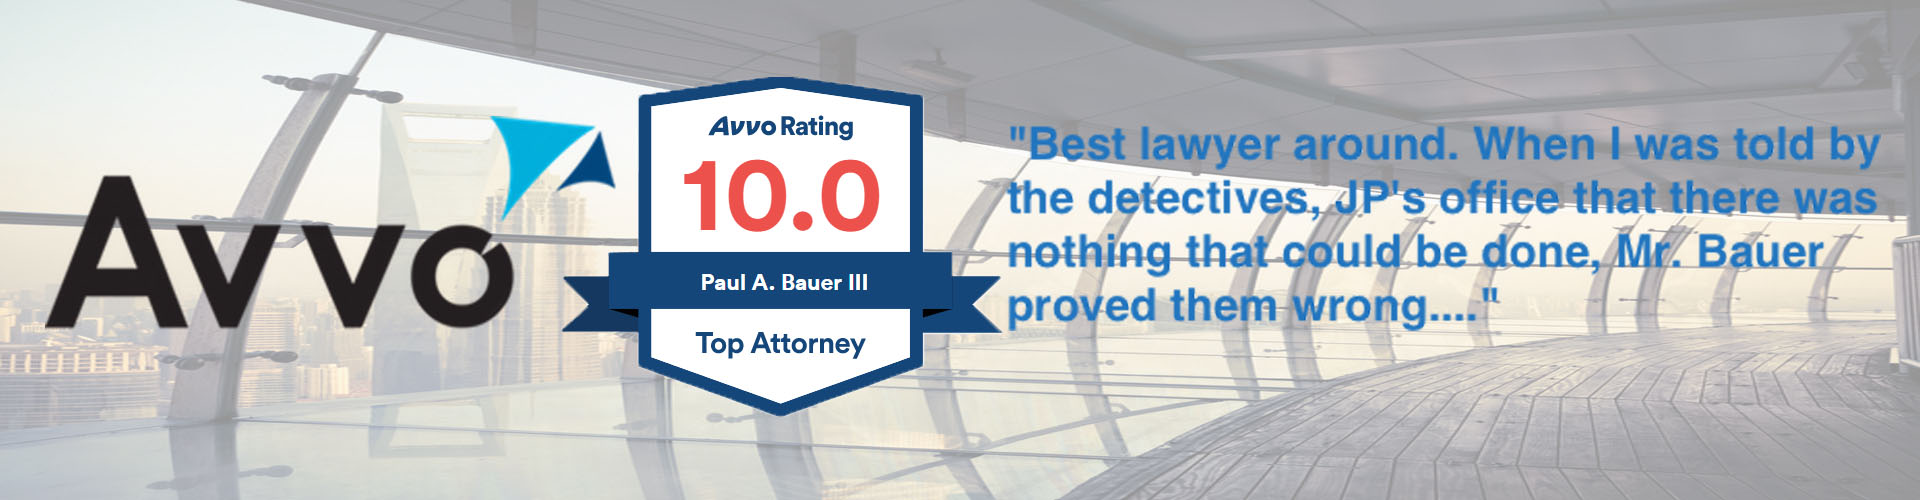 Paul Bauer Avvo Rating 10